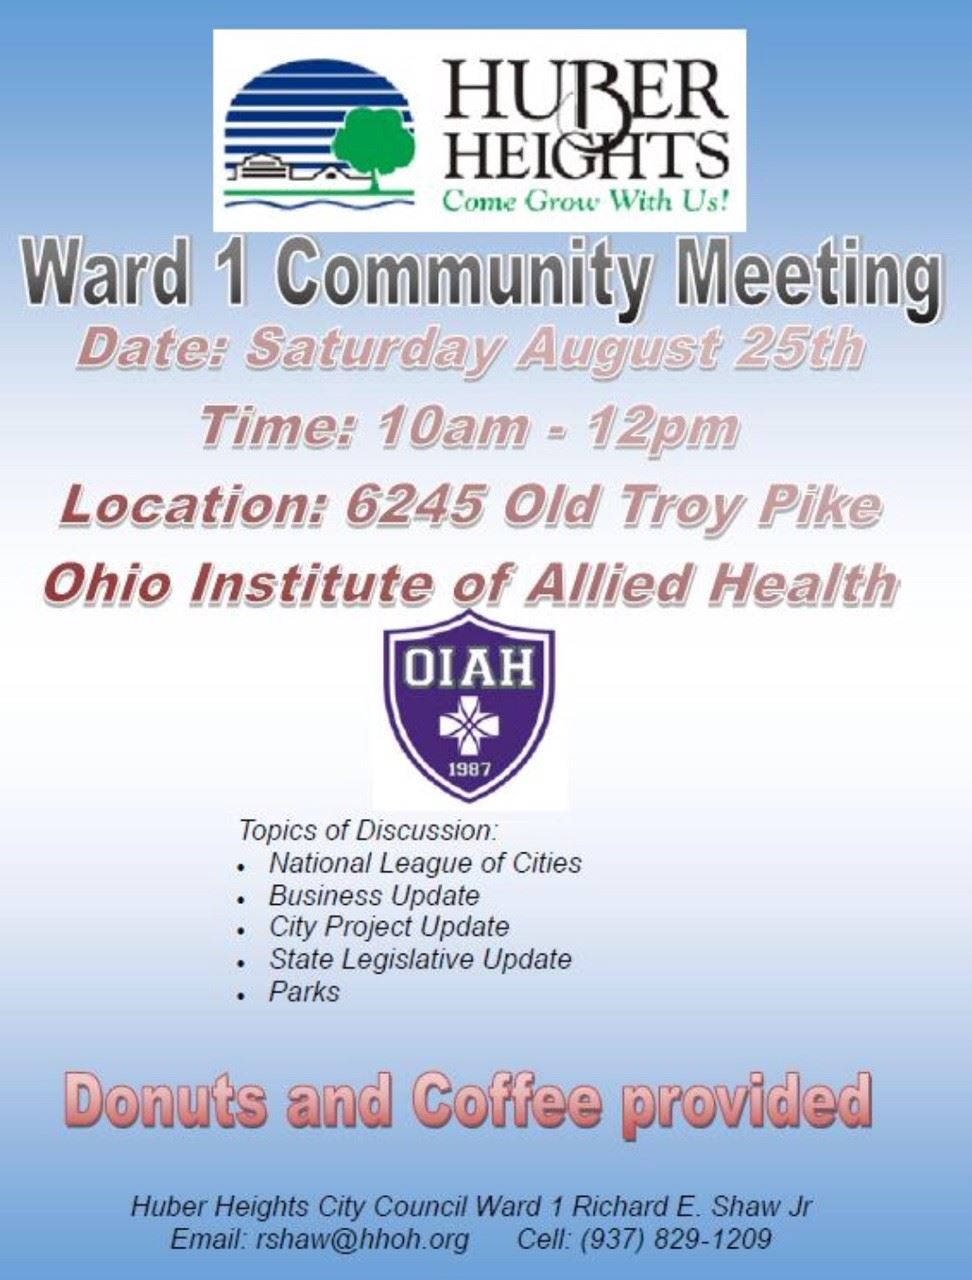 Ward 1 Meeting - R. Shaw - 082518